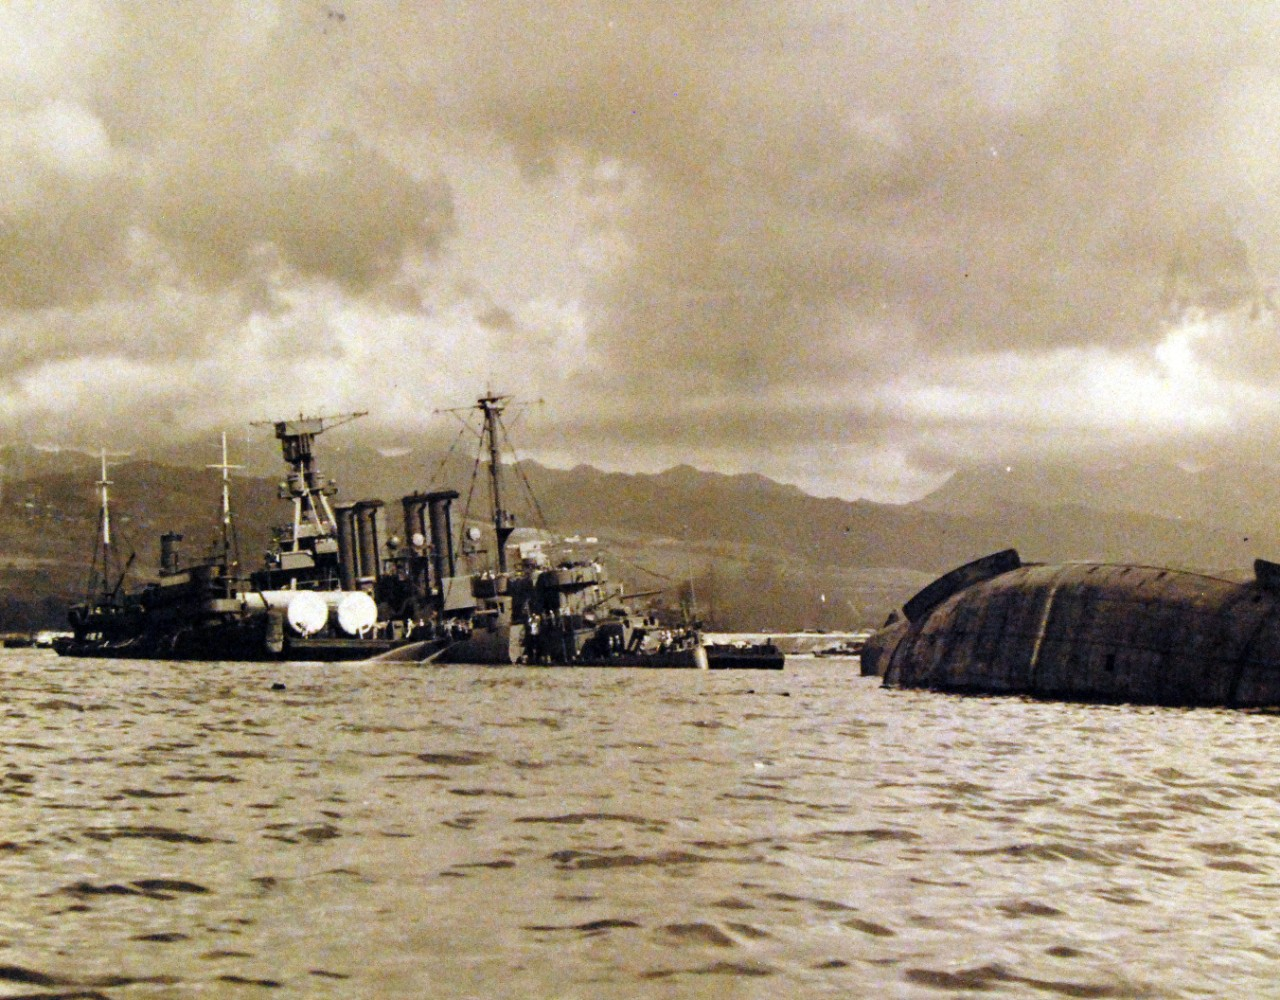 80-G-32742:   Japanese Attack on Pearl Harbor, December 7, 1941.   The capsized USS Utah (AG 16) and USS Raleigh (CL 7) are shown after the attack. Official U.S. Navy photograph, now in the collections of the National Archives. (9/9/2015).